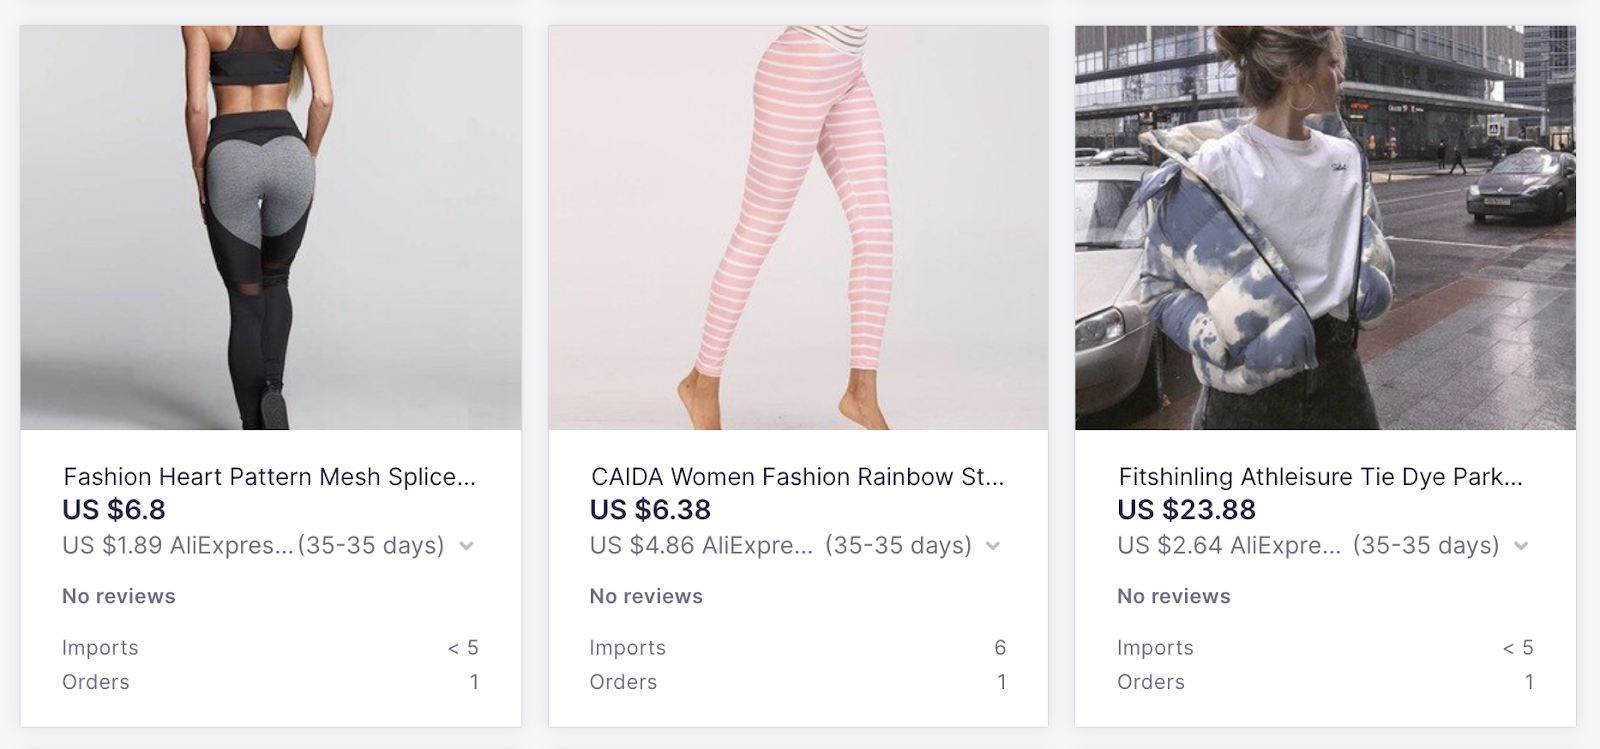 Best Products to Sell Online 2020: Athleisure